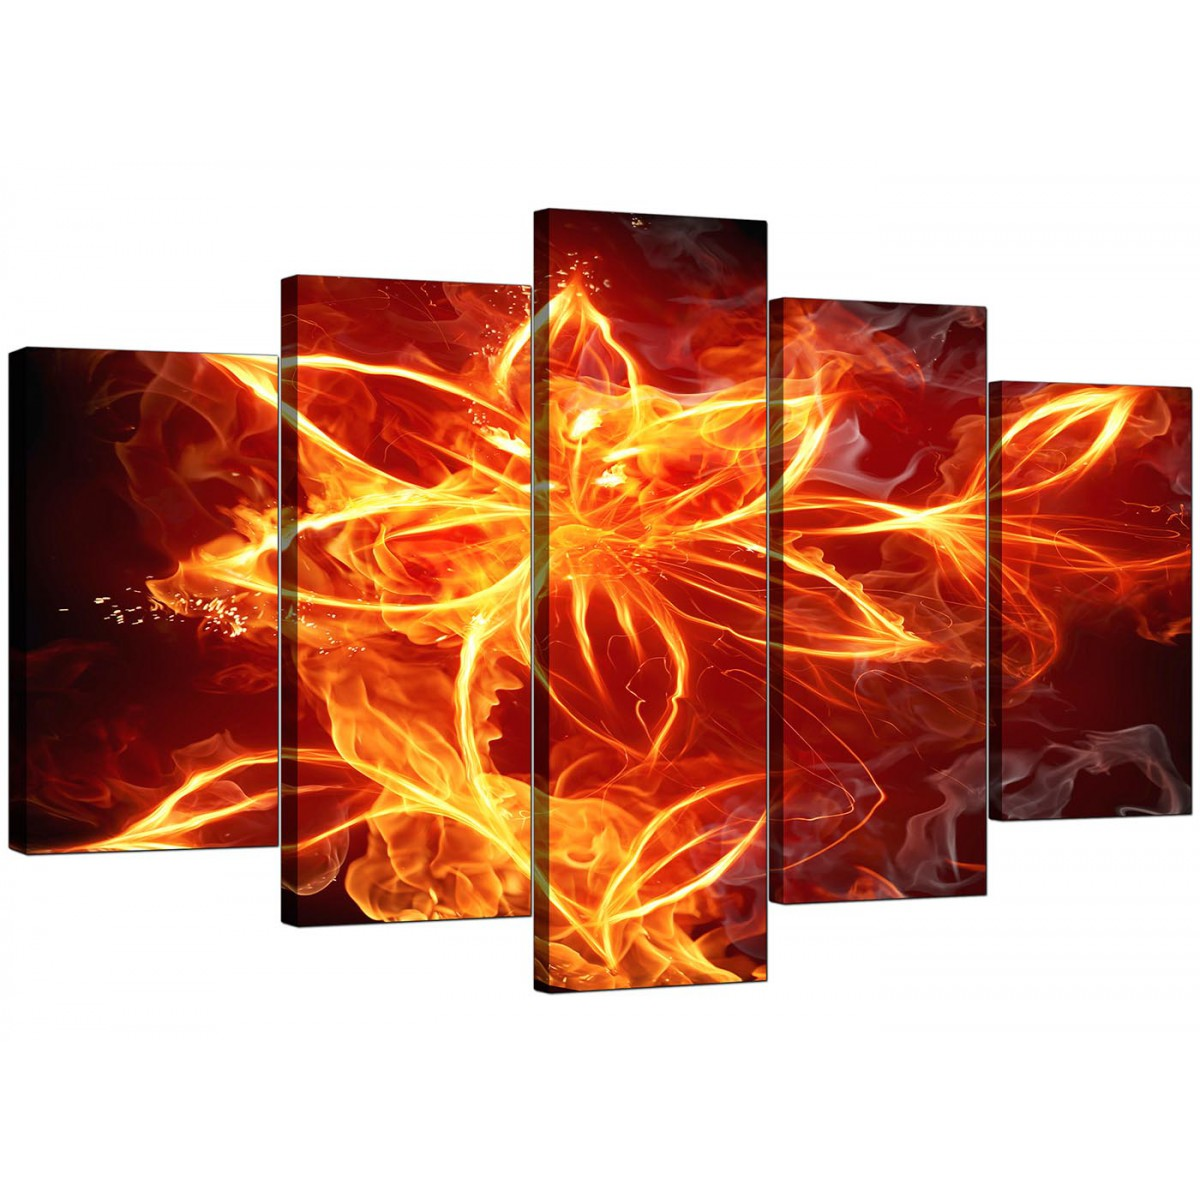 Extra Large Fire Flower Canvas Wall Art 5 Panel In Orange